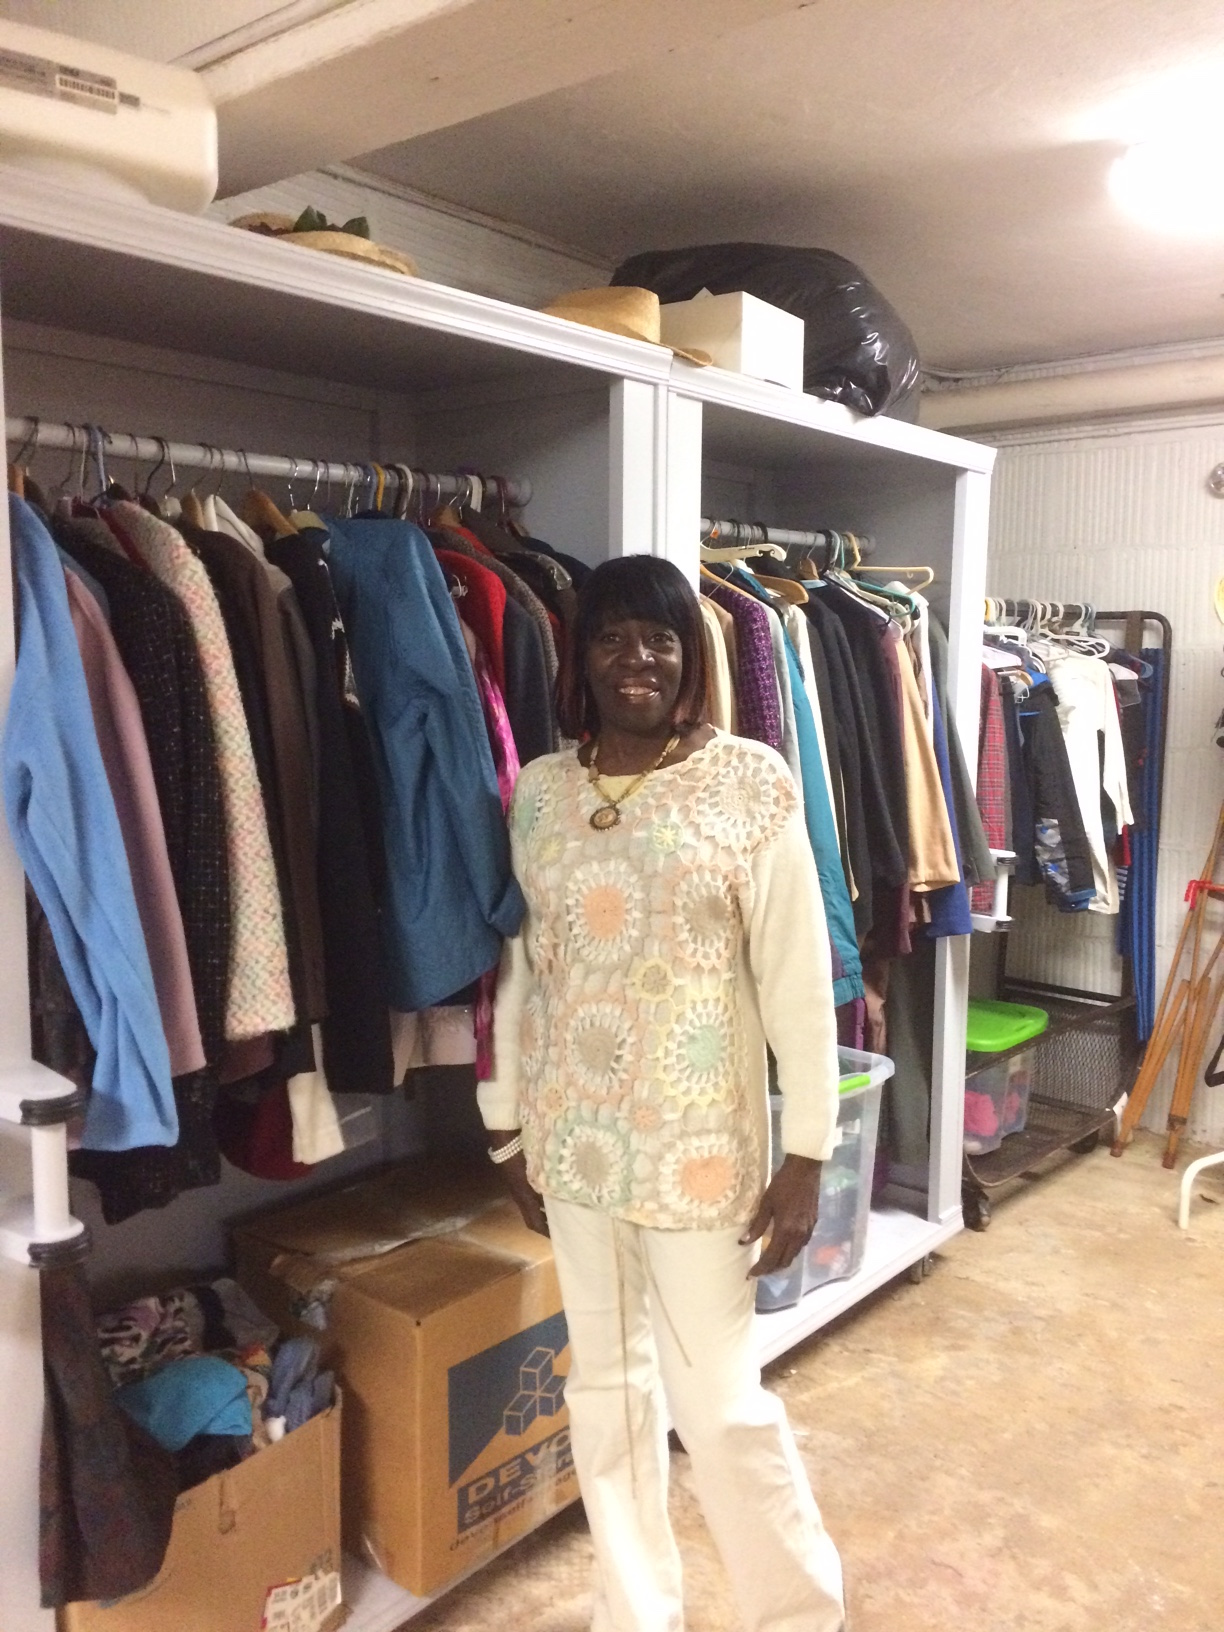 Bridget volunteers at our Clothing Shop and is wonderful with our shoppers.